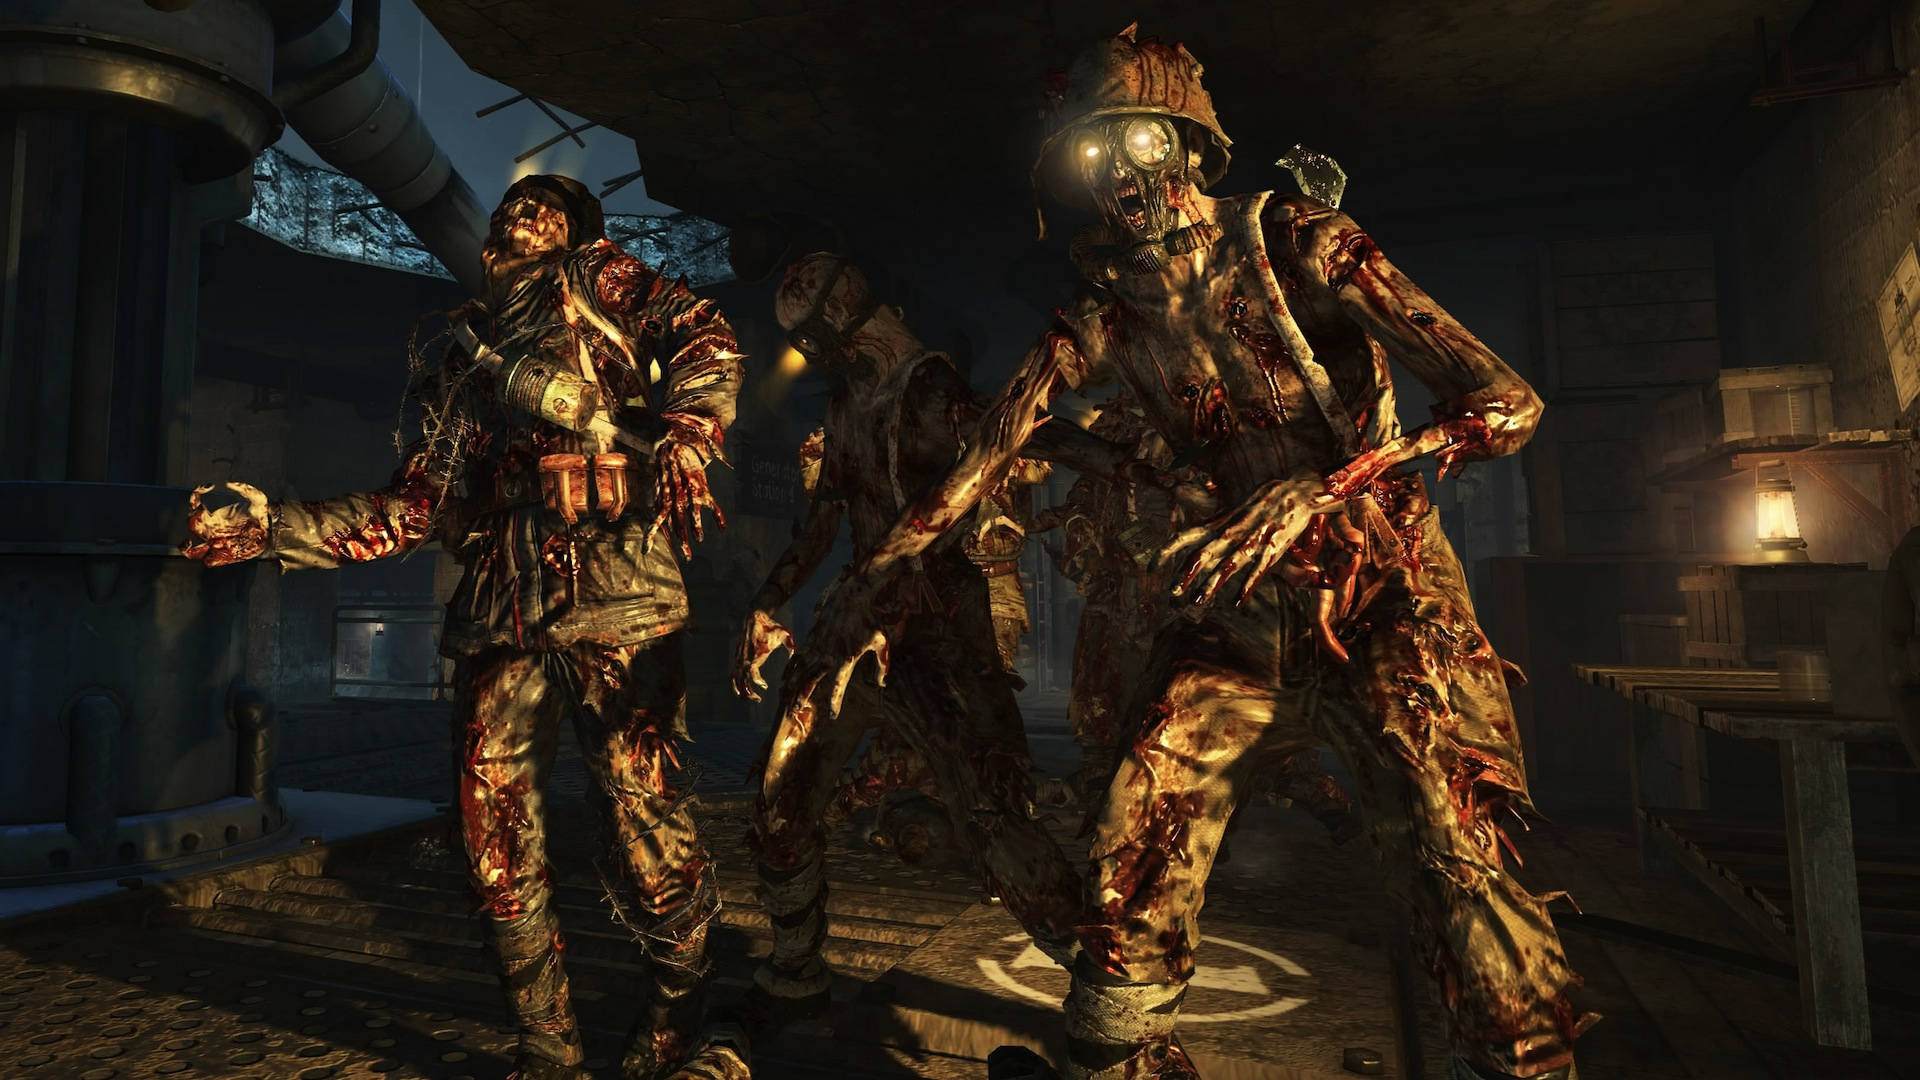 call of duty black ops 2 zombies wallpaper - sf wallpaper